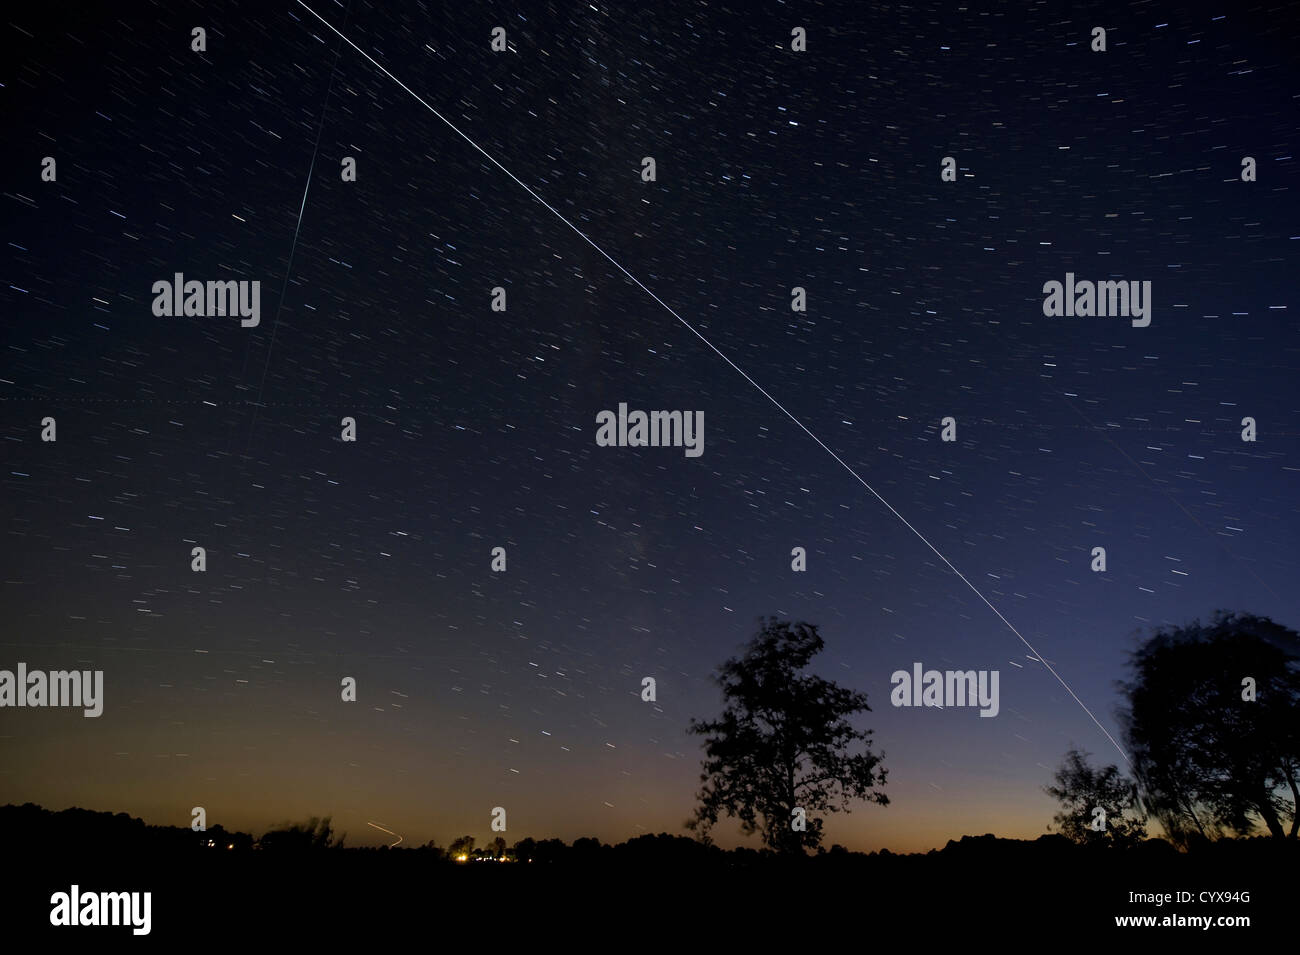 The ISS passing by over the evening sky in The Netherlands - Stock Image